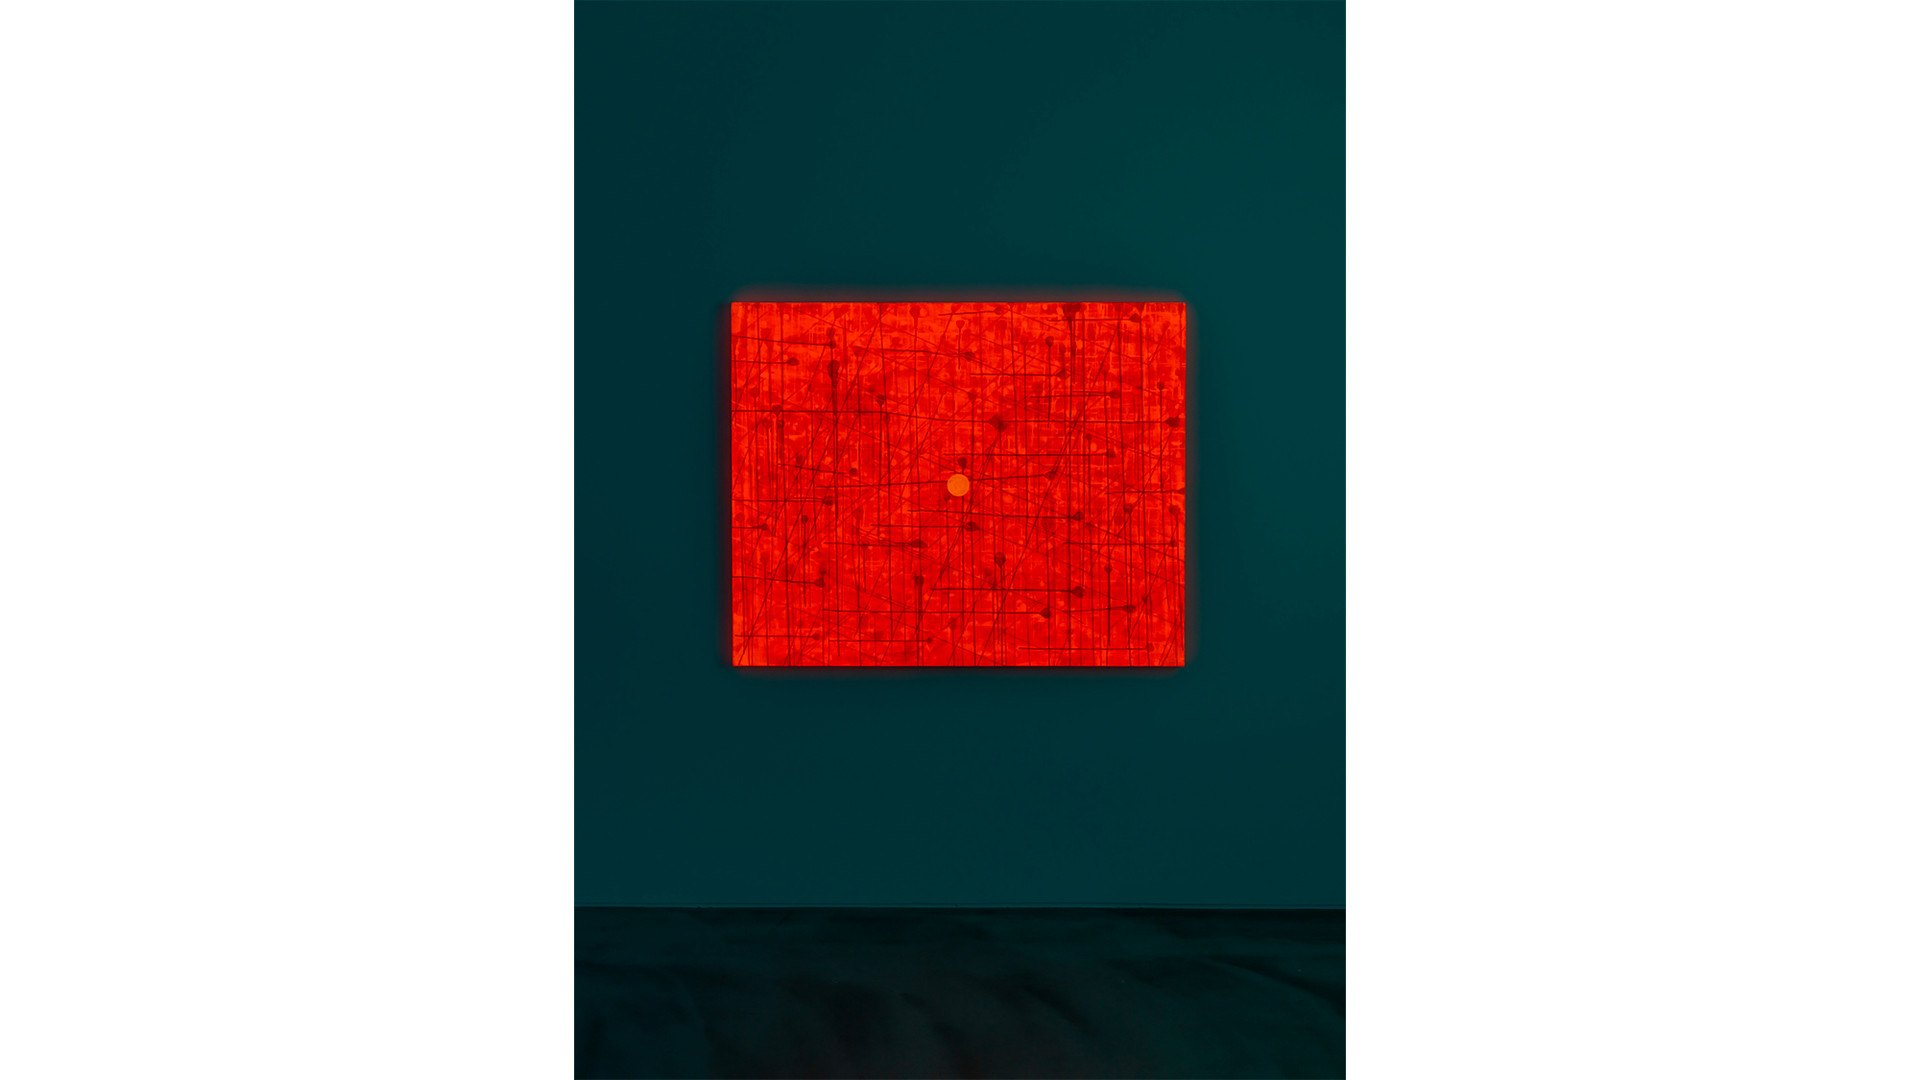 A Particle, 2020, acrylic & phosphorescent pigment on canvas, 130 x 162 cm